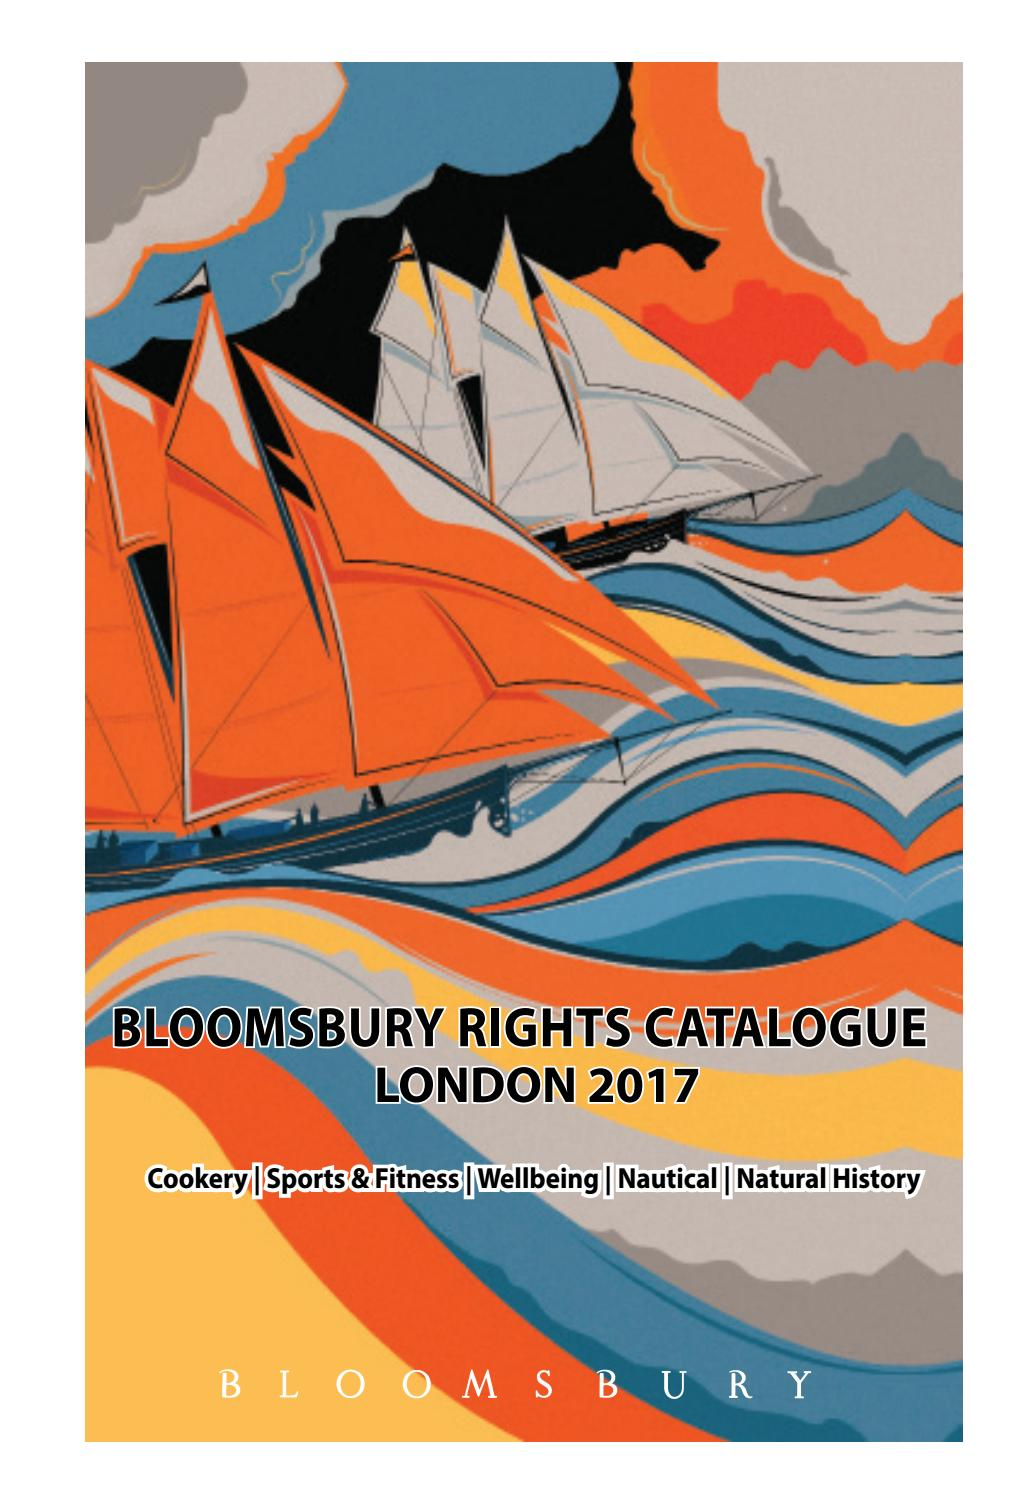 Bloomsbury Special Interest Rights Guide London 2017 by Bloomsbury  Publishing - issuu